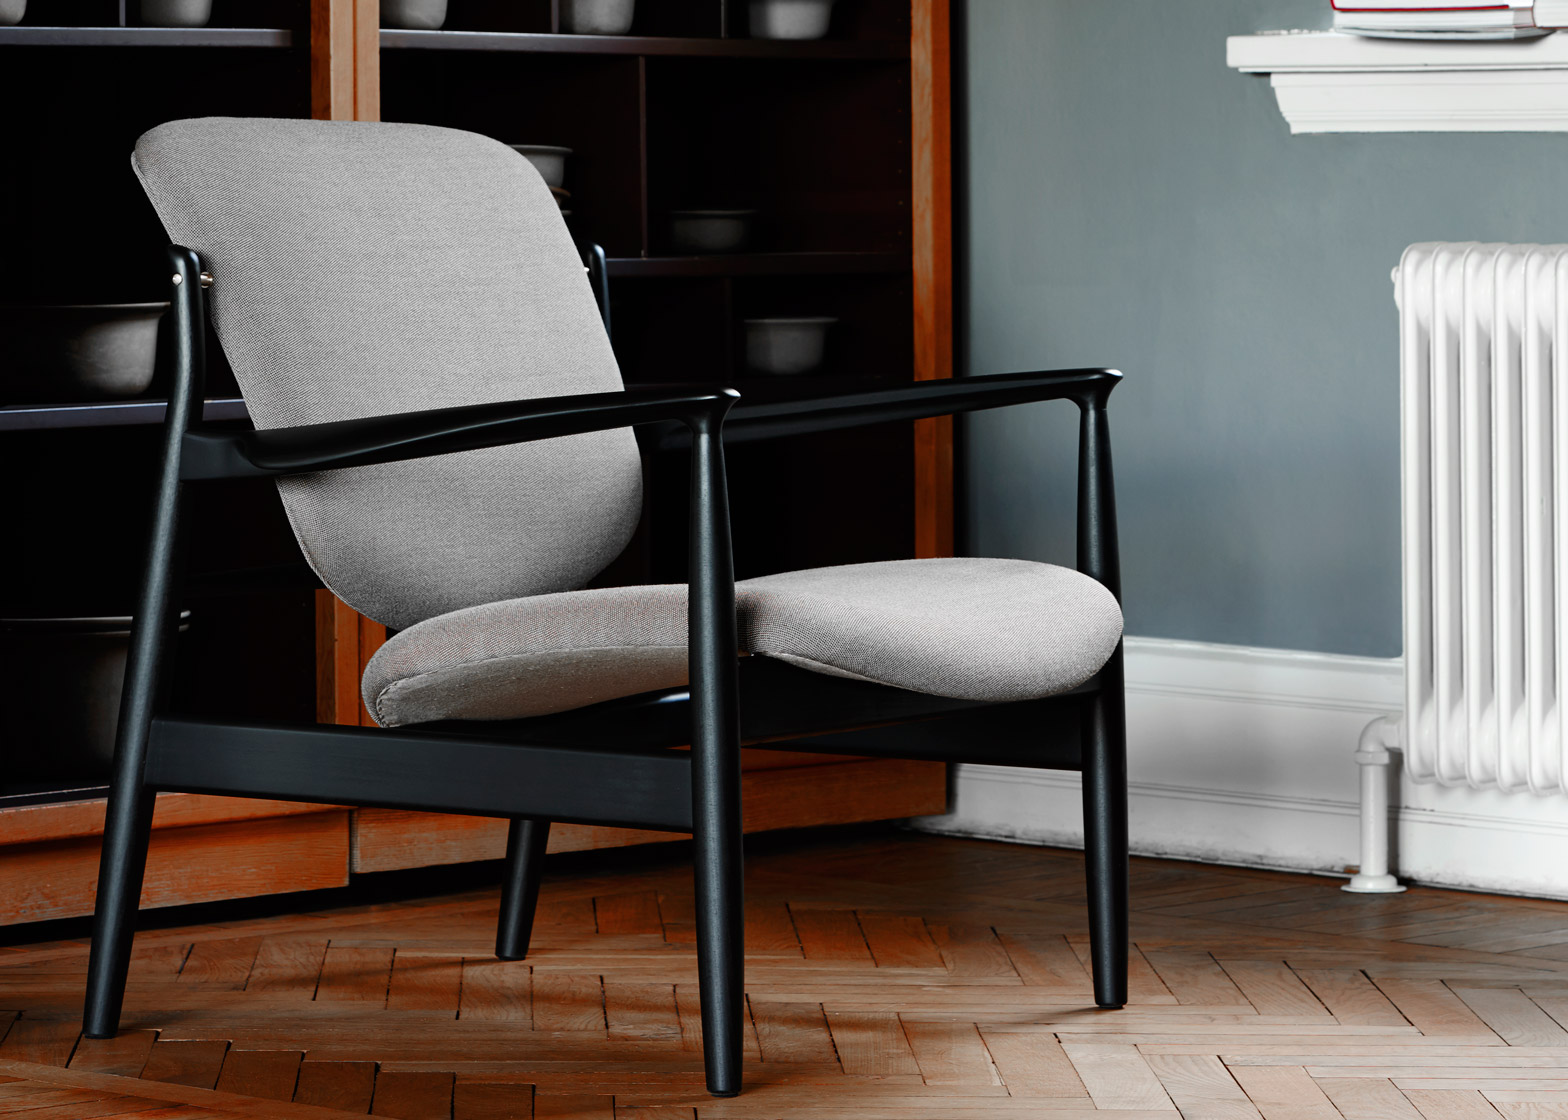 2 Of 5; France Chair By Finn Juhl